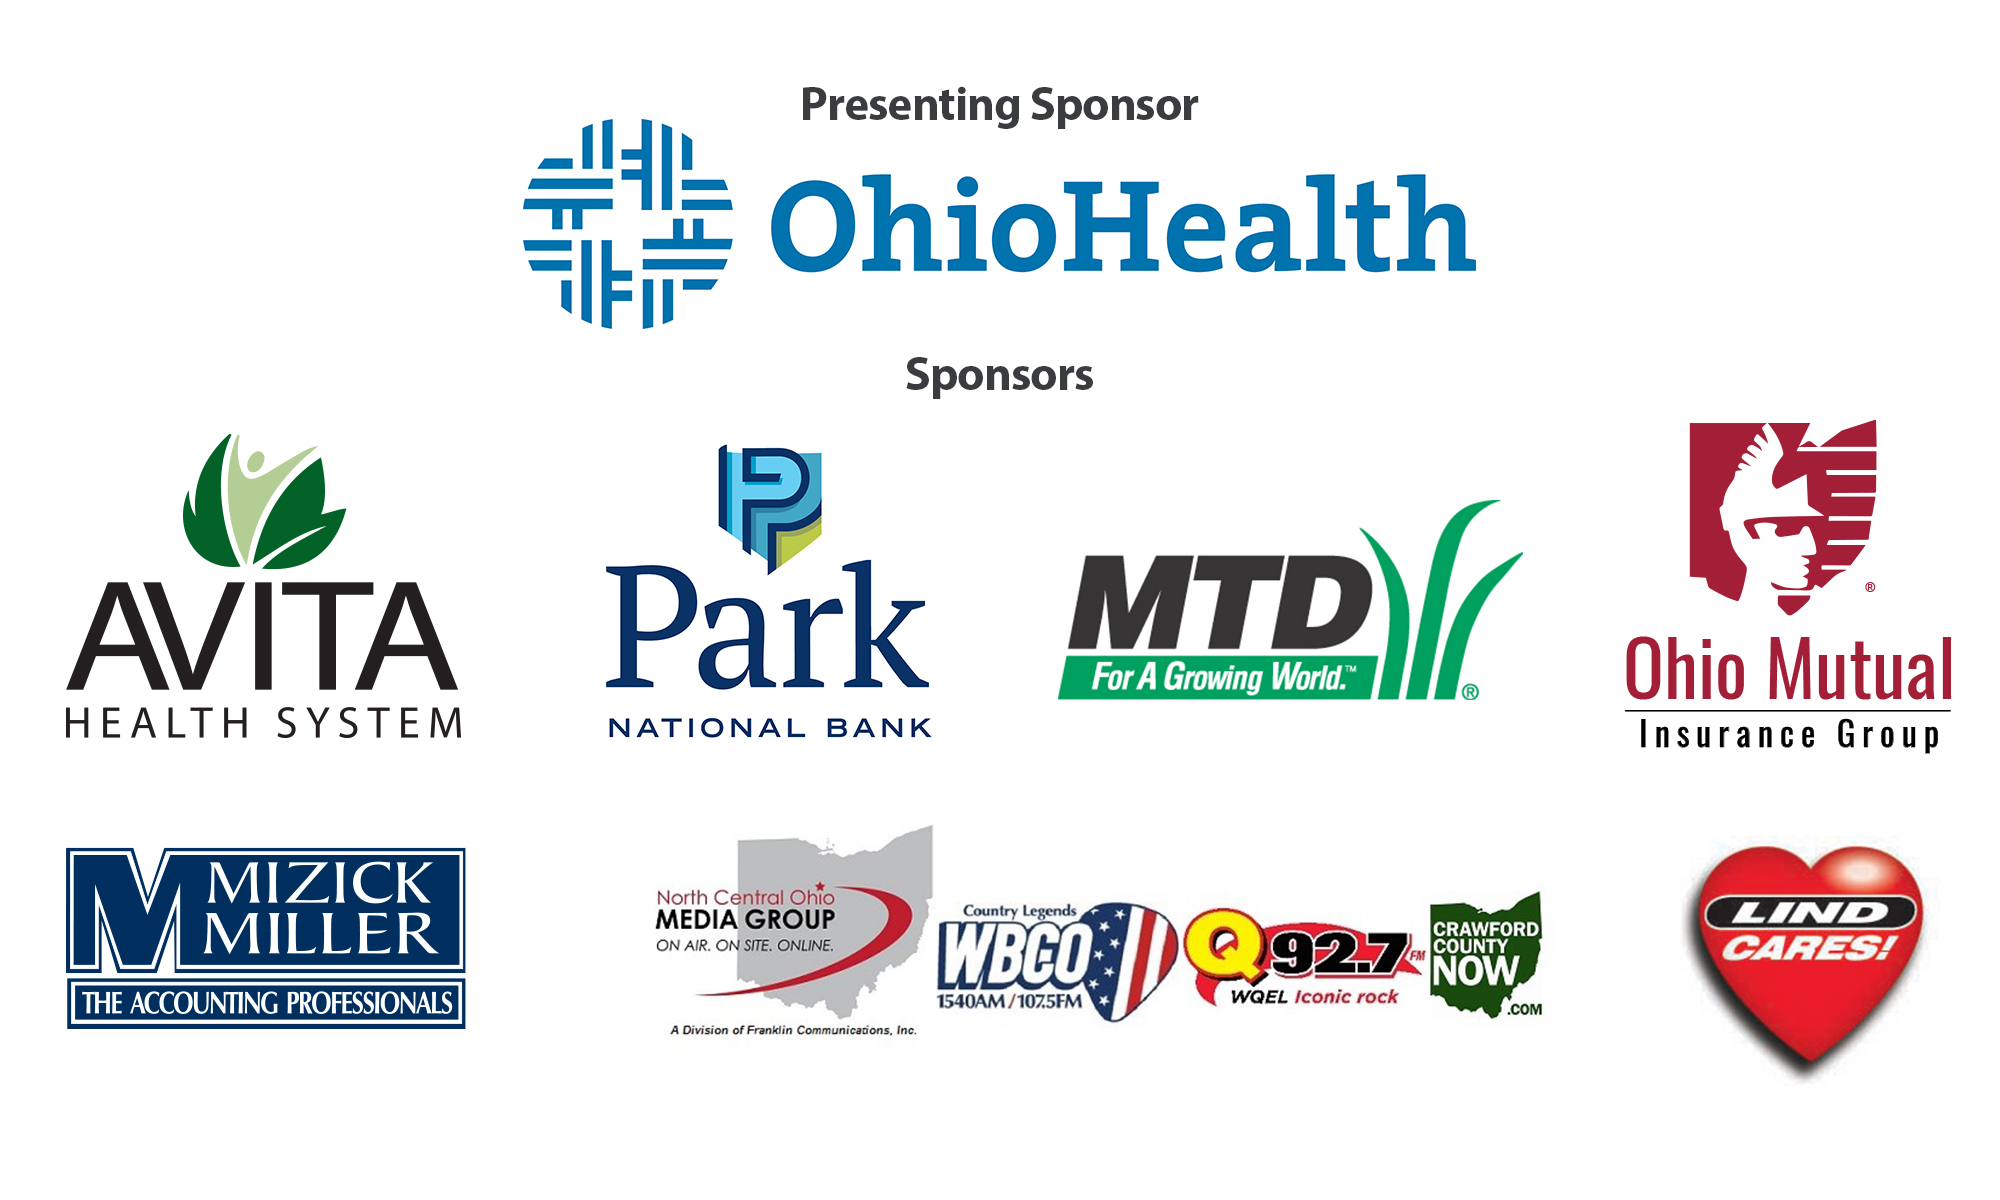 graphic with all sponsor logos. Ohio Health presenting sponsor